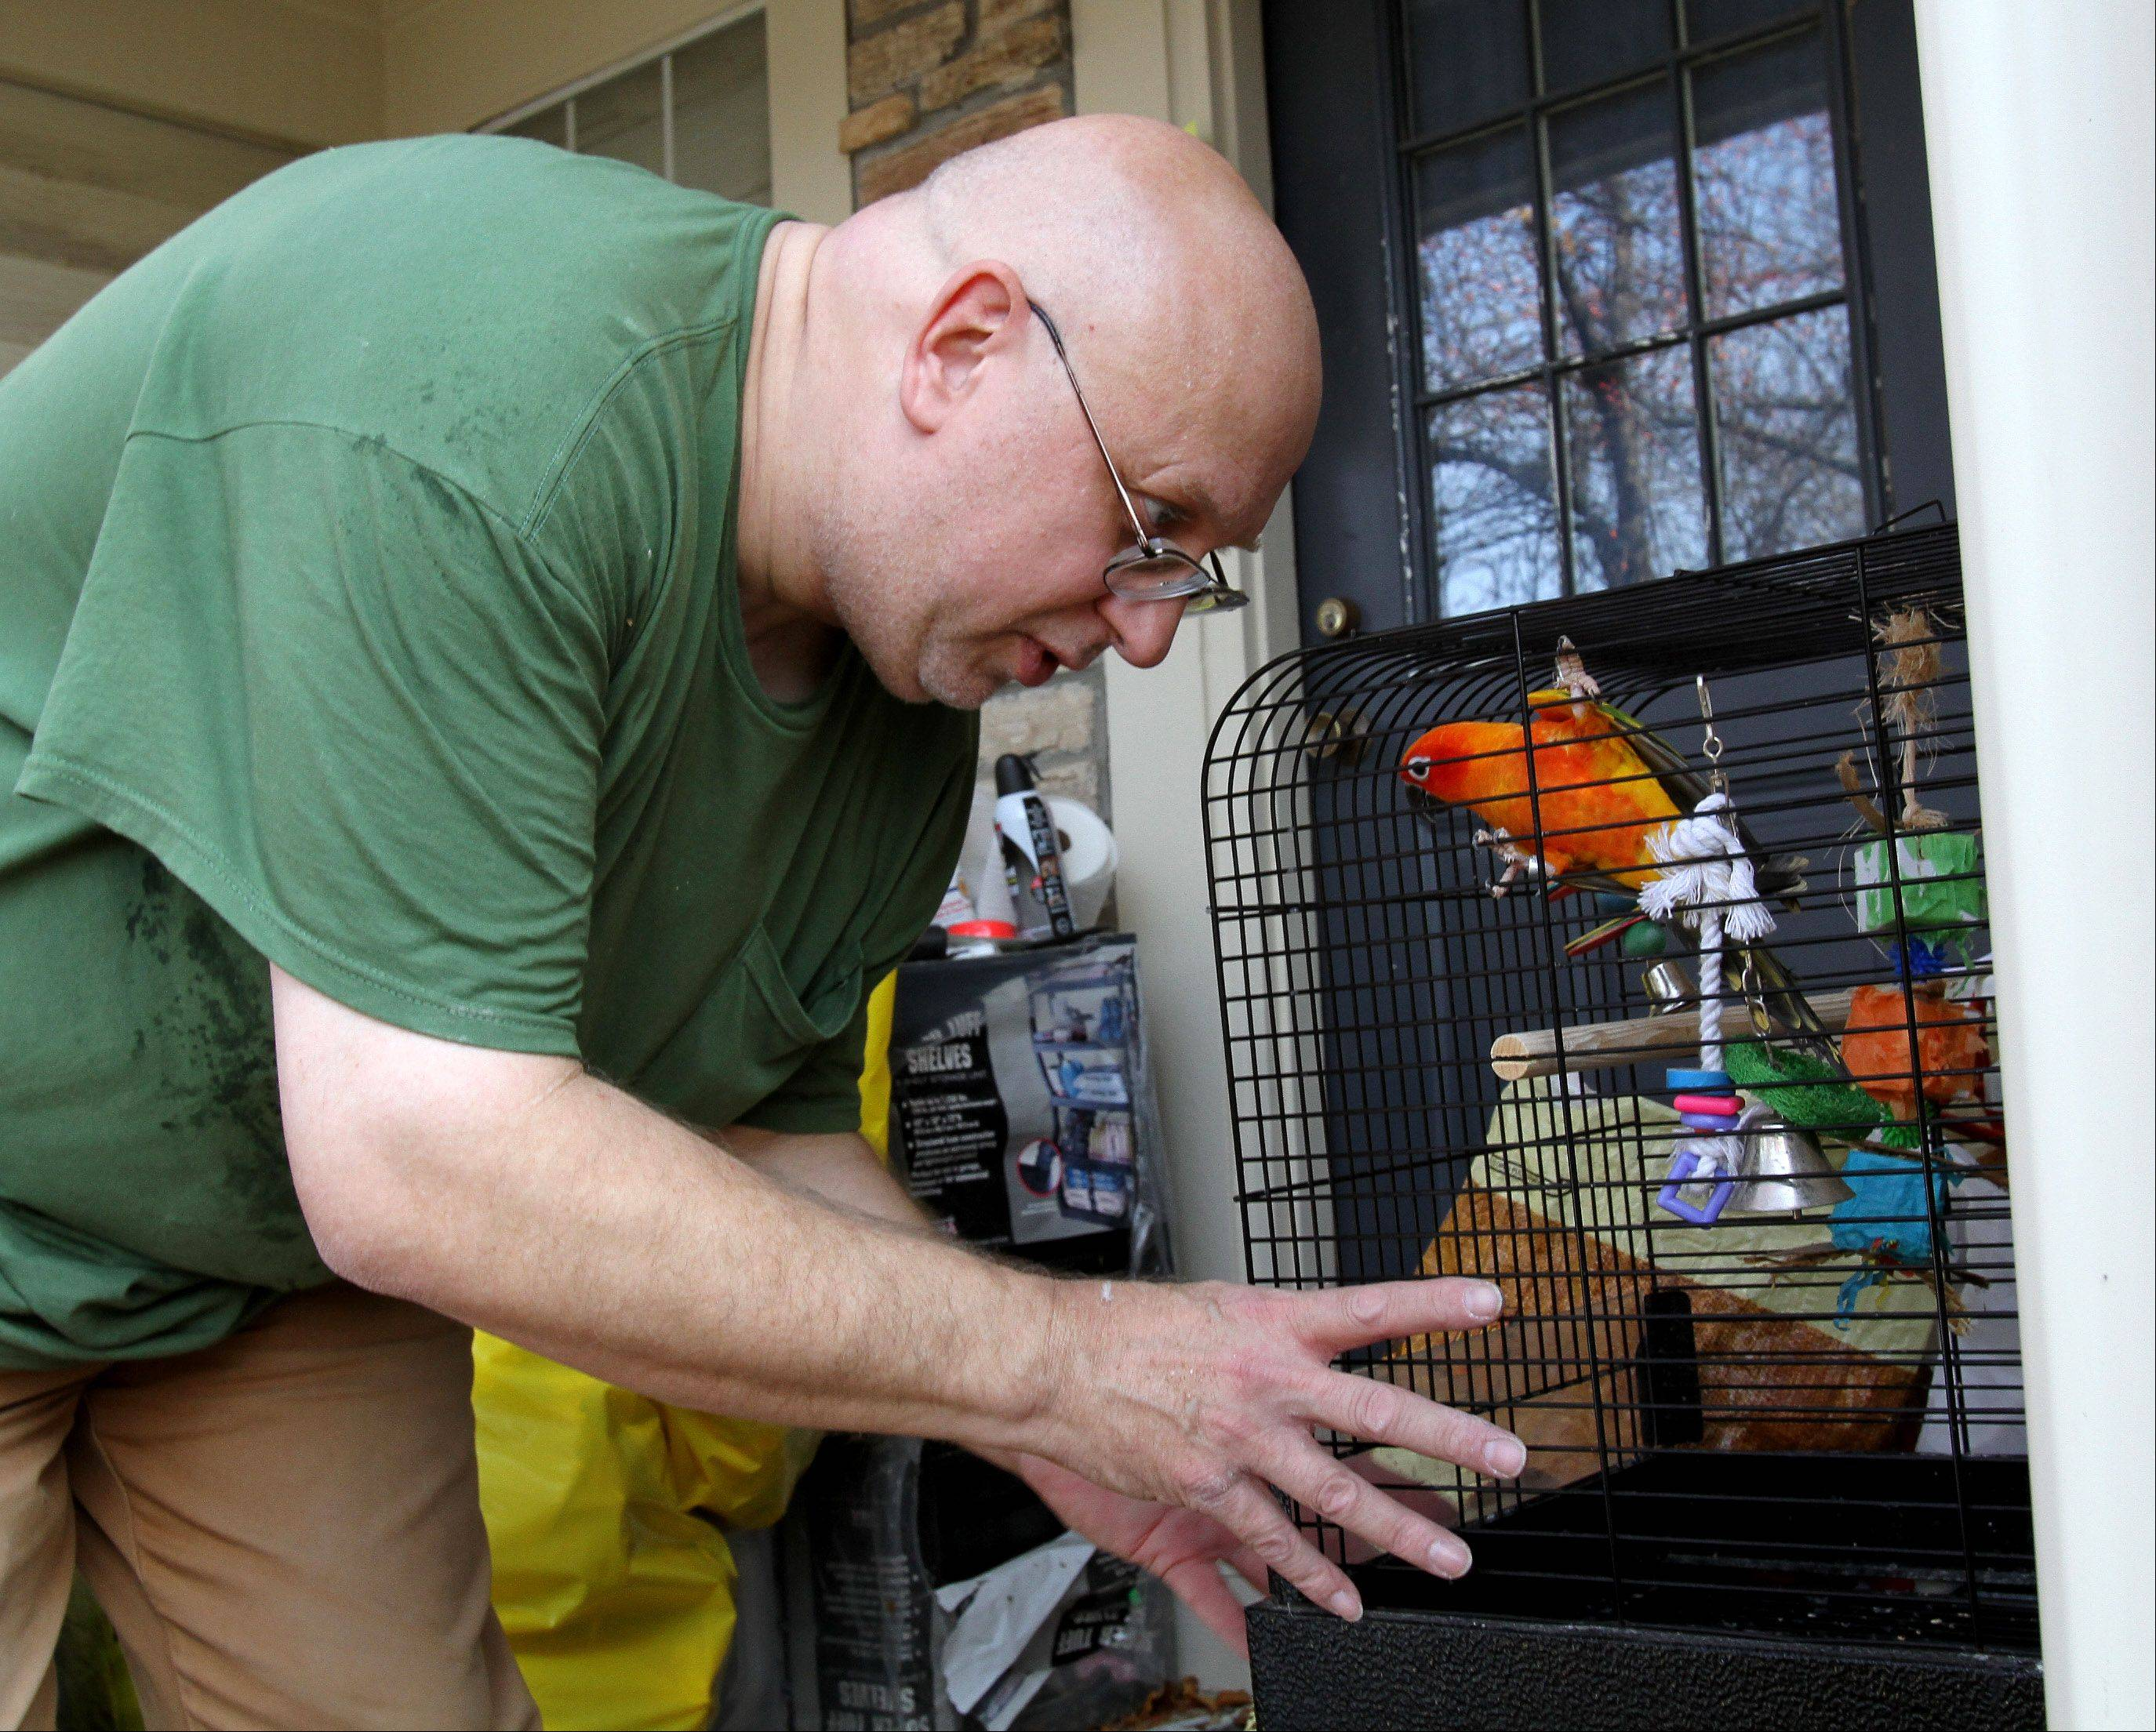 Dave Skeberdis of Aurora has been charged with misdemeanor companion animal hoarding after authorities found 478 birds � 120 of them dead � in his home last month.